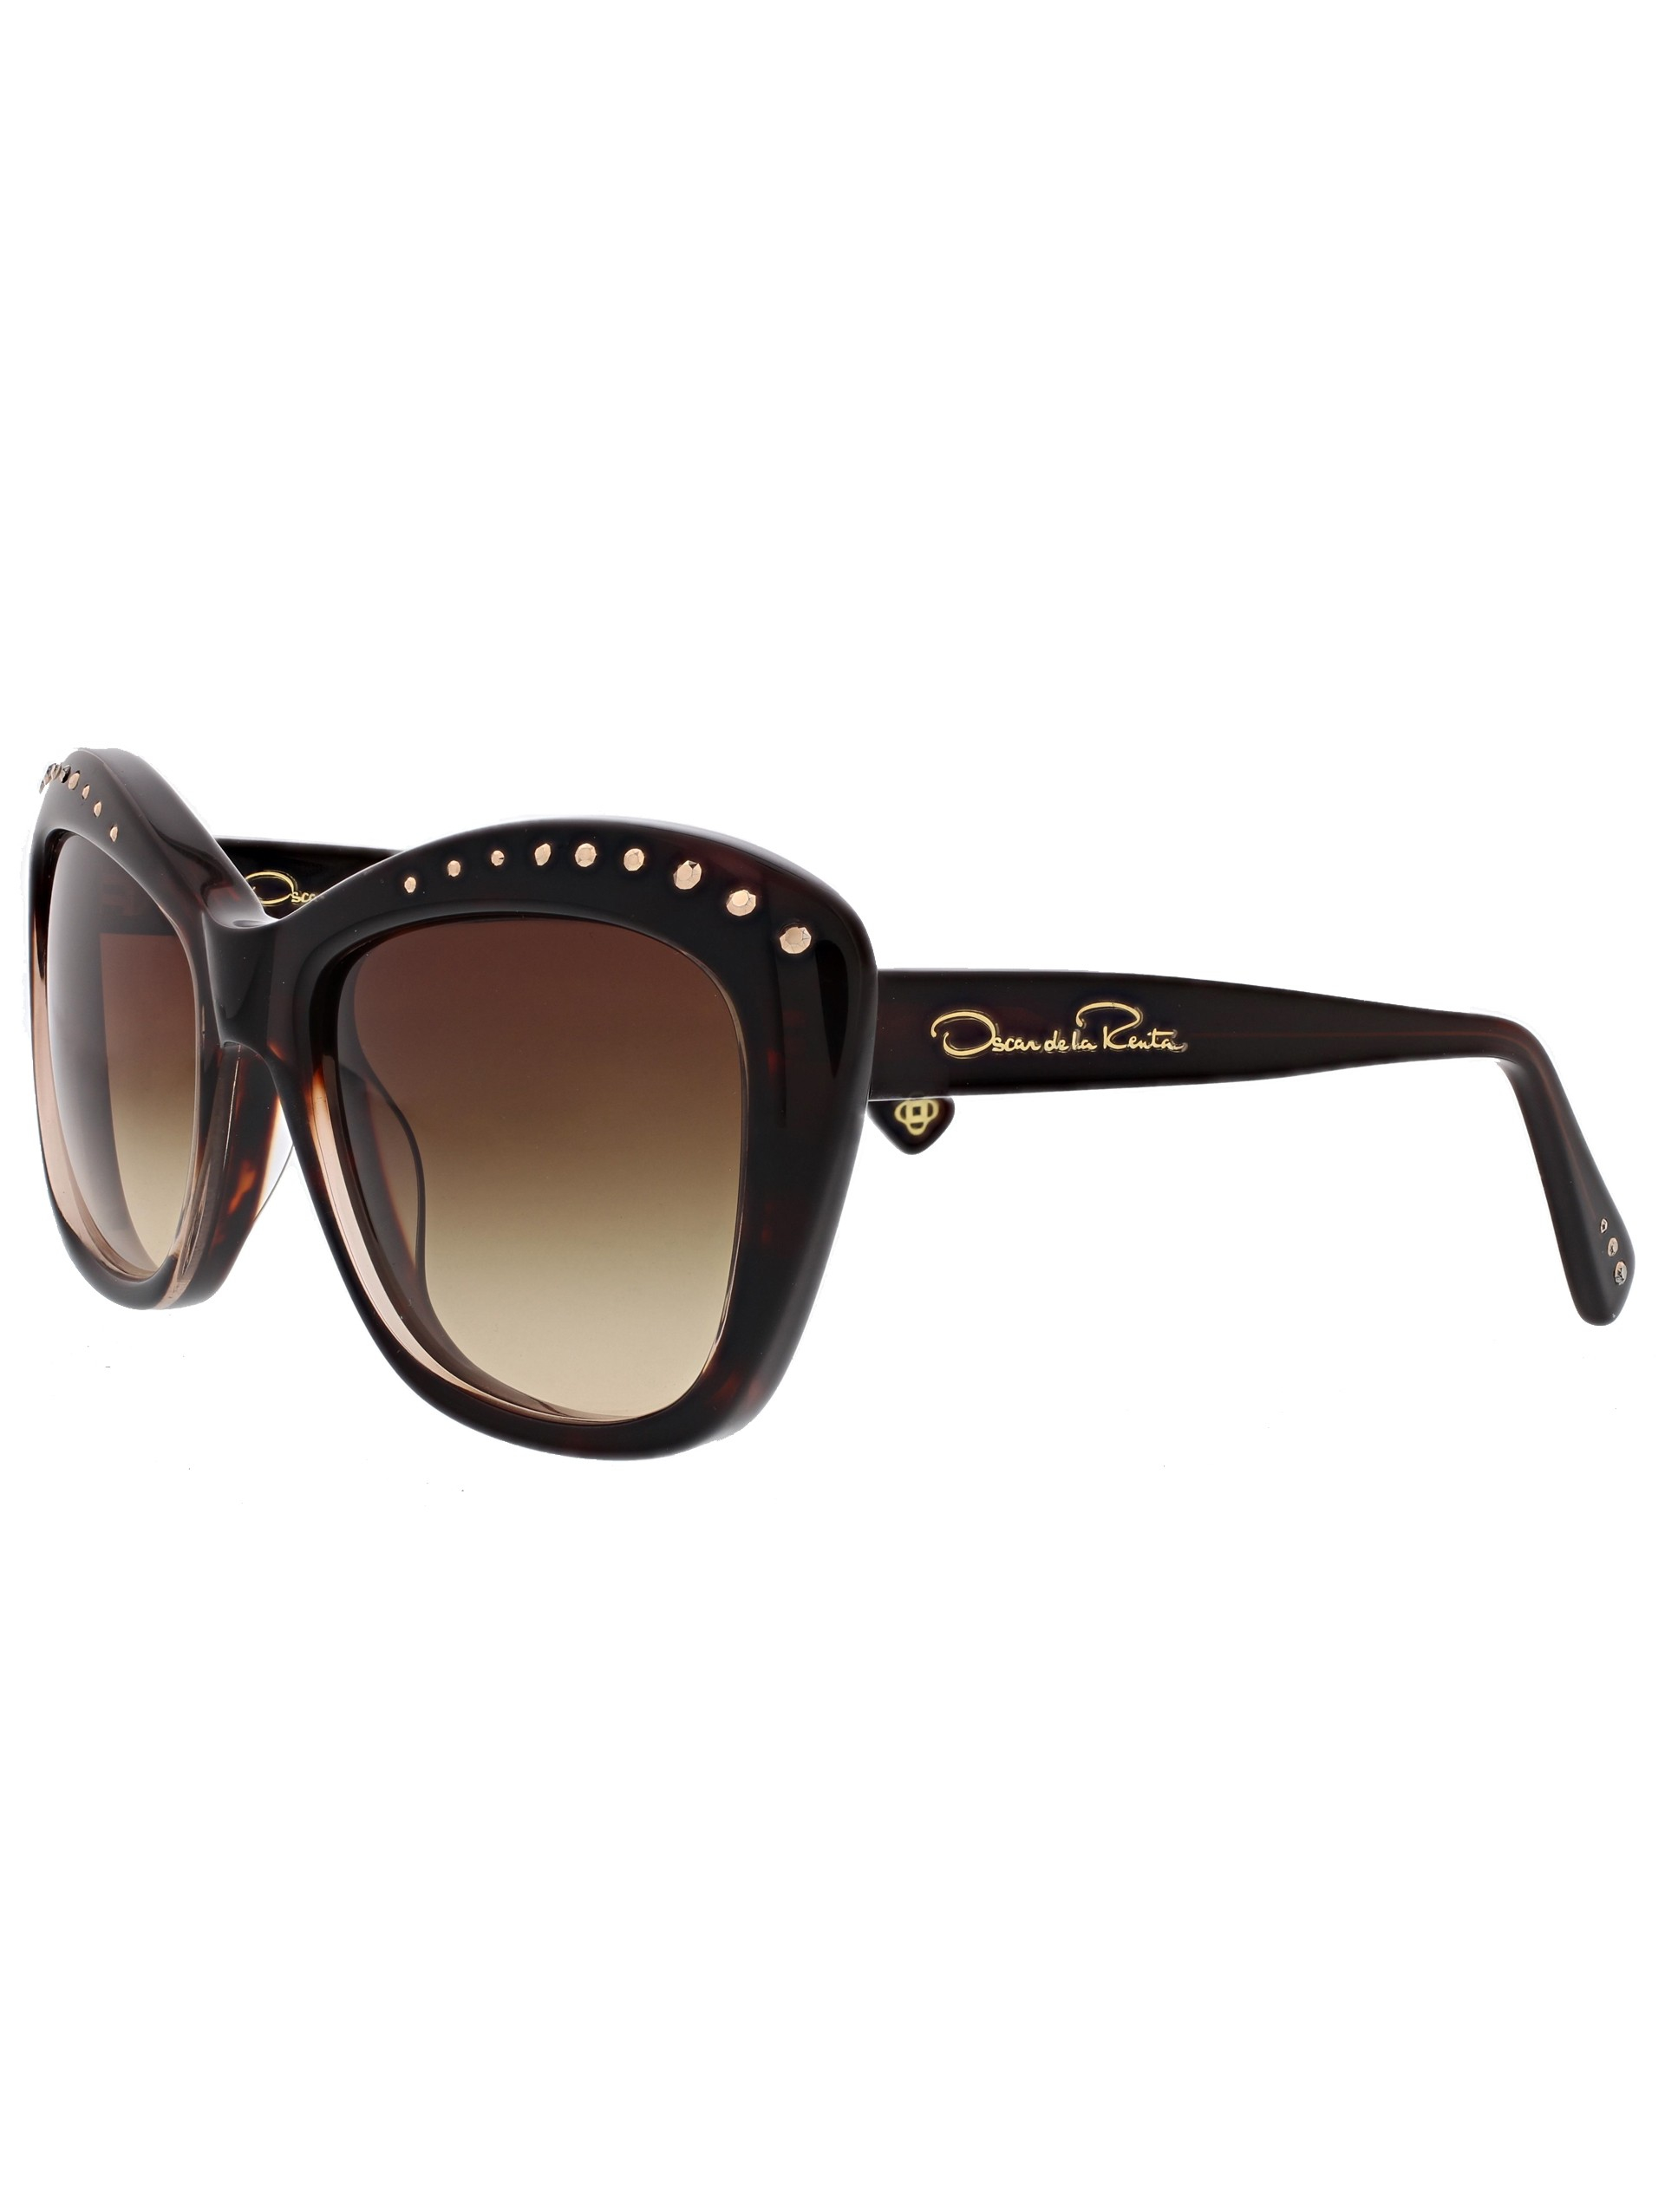 8509162ebe17f Oscar de la Renta Acetate Cat-eye Sunglasses With Swarovski Crystals ...